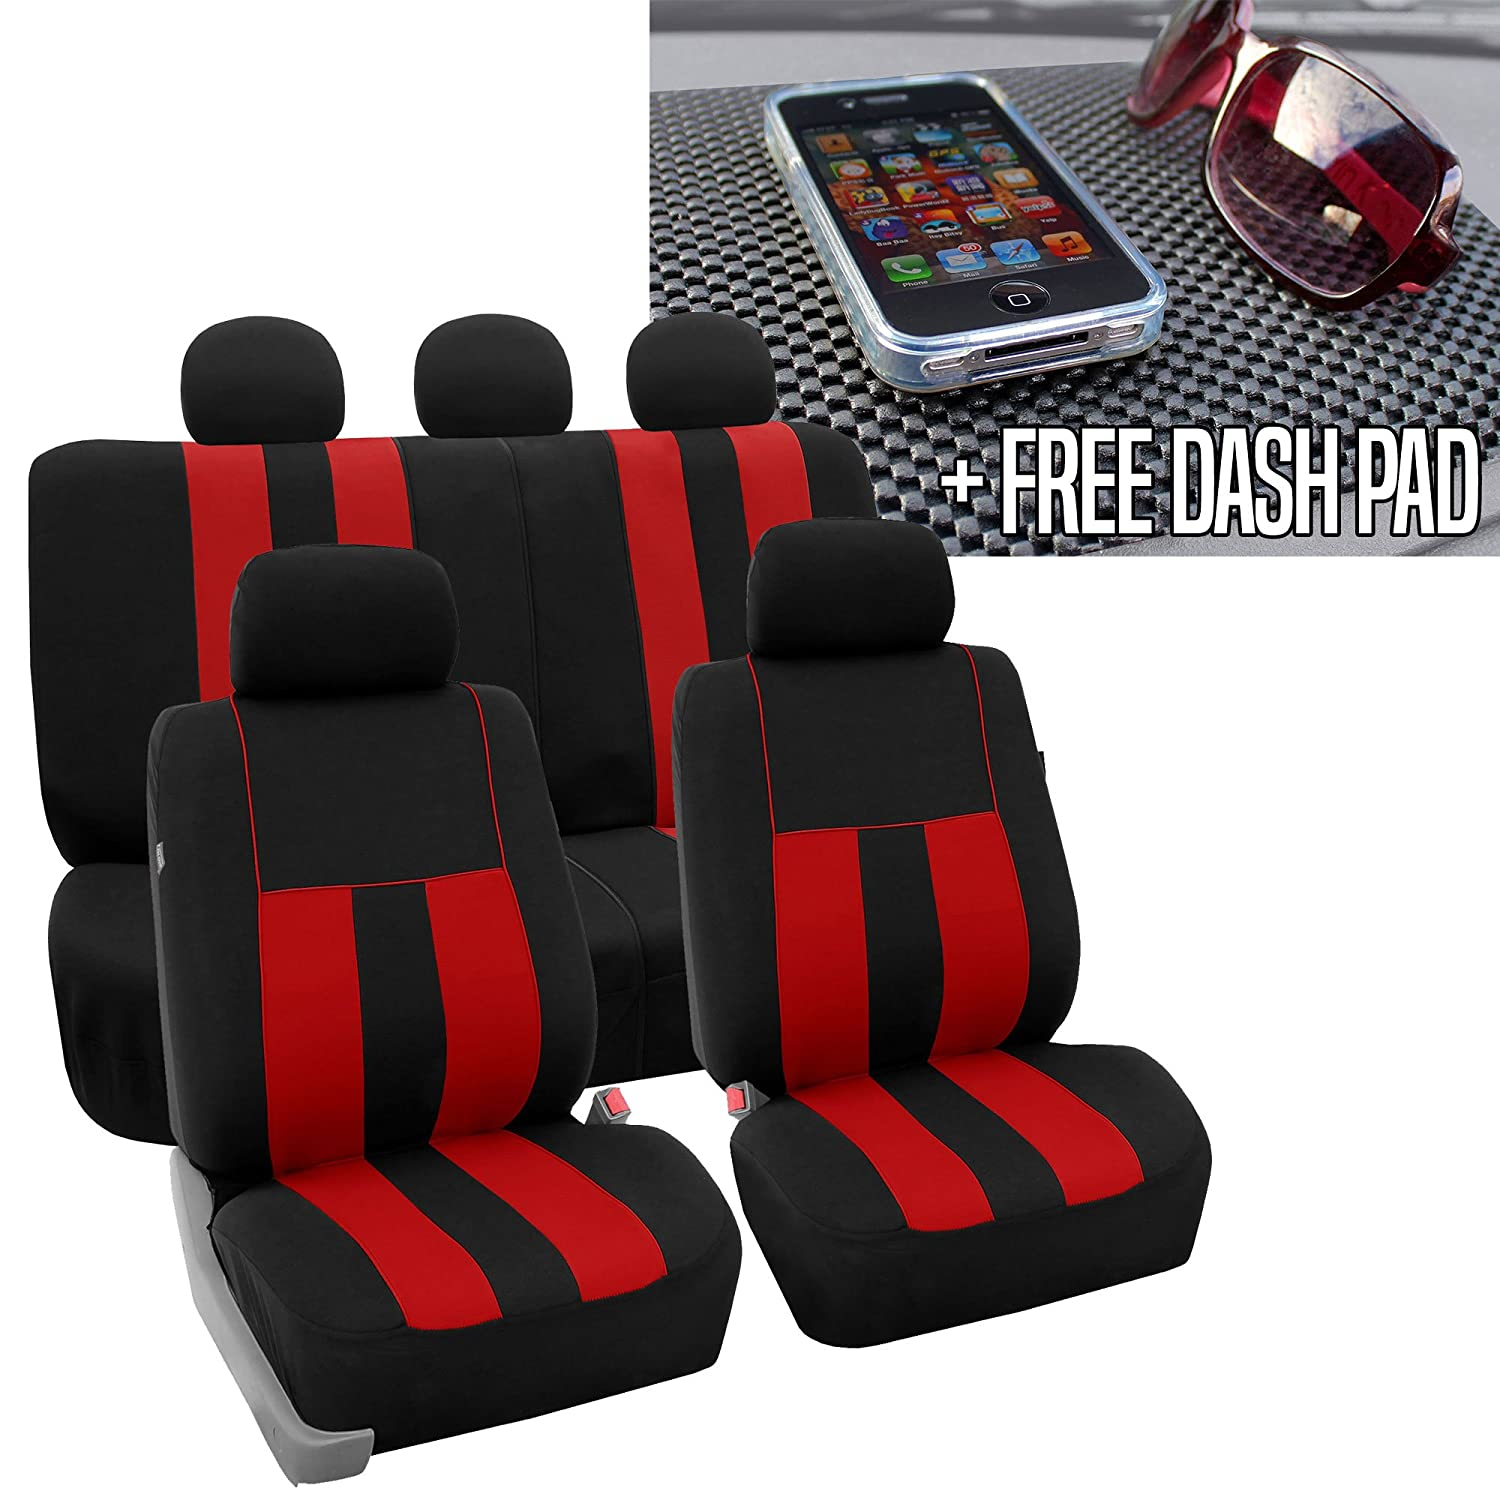 FH GROUP FH-FB036115 Striking Striped Seat Covers, Red / Black with FH GROUP FH1002 Non-slip Dash Grip Black Pad Mat - Fit Most Car, Truck, Suv, or Van